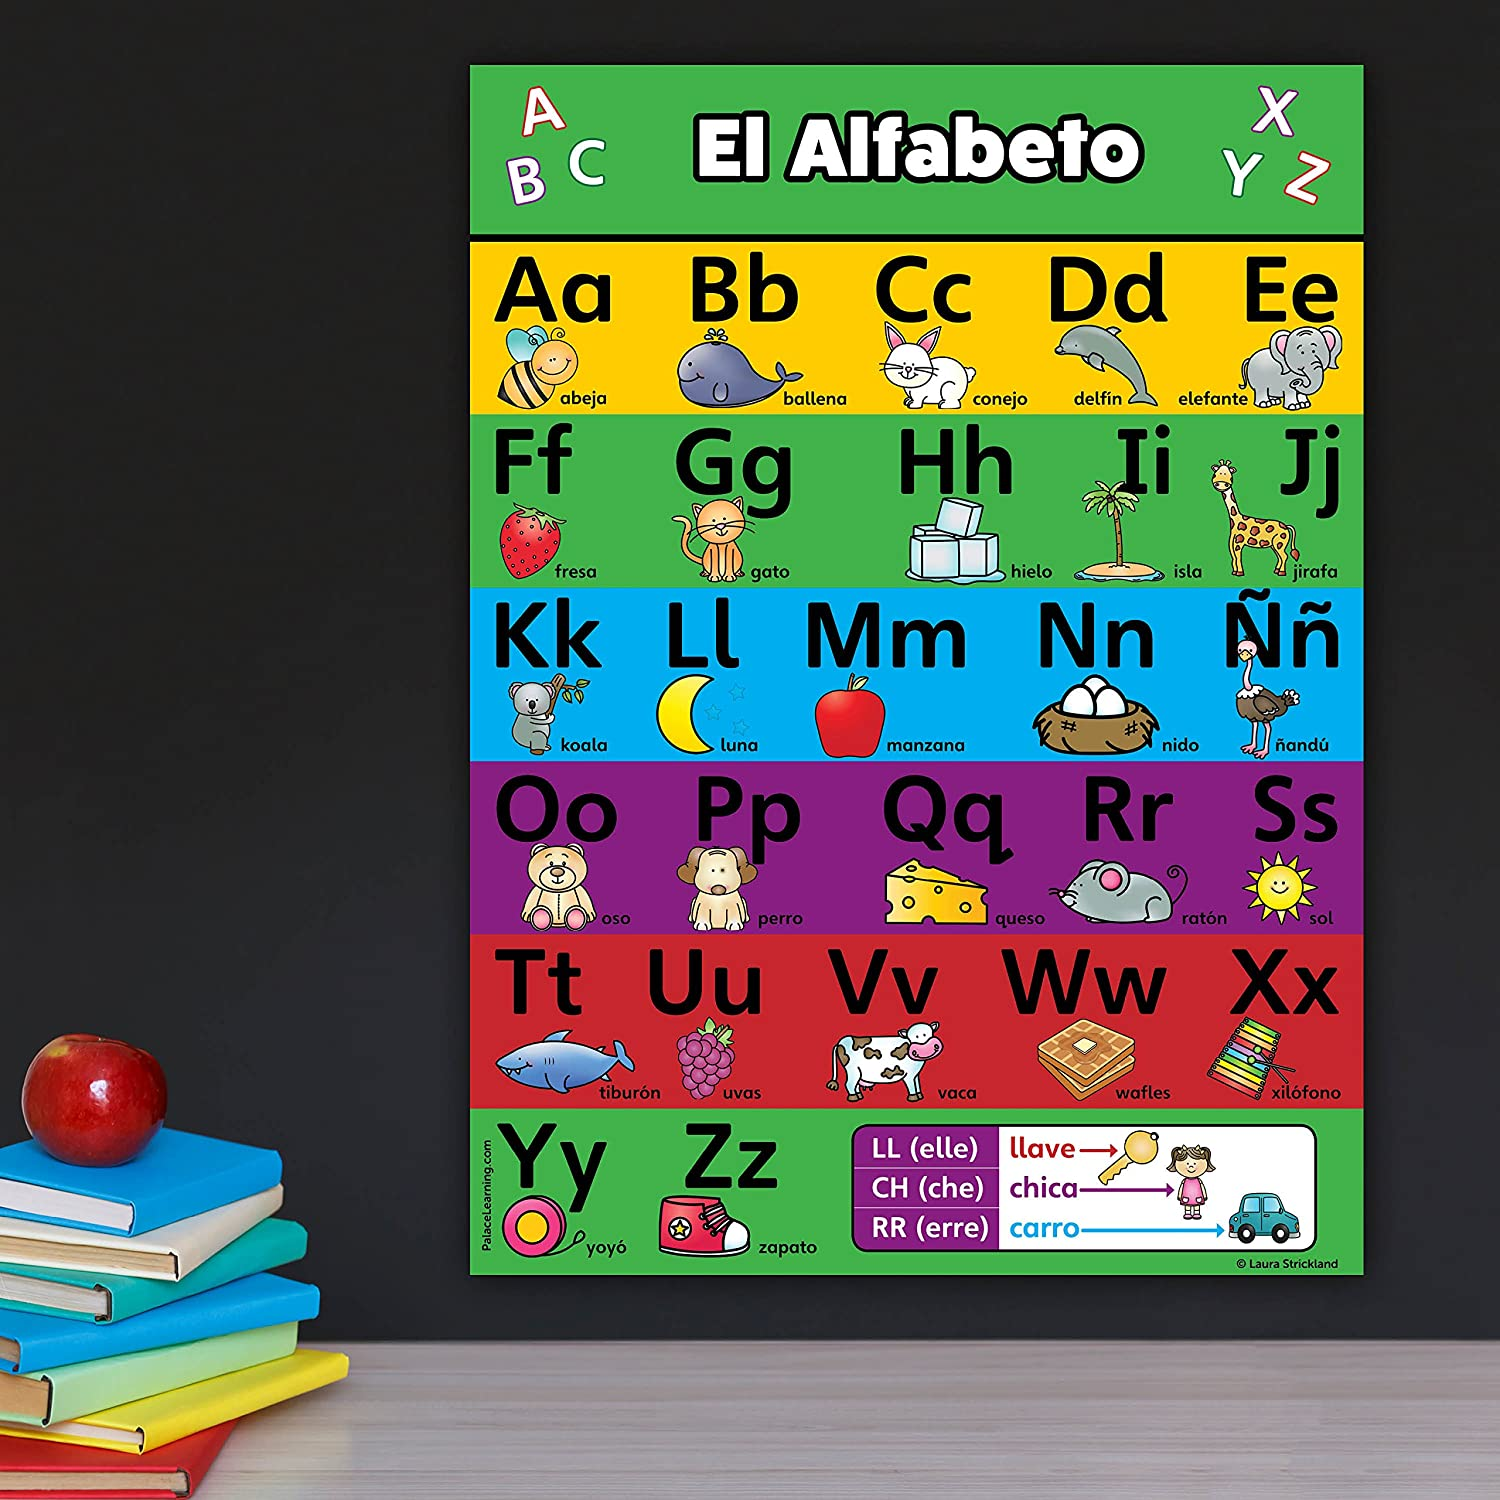 Amazon.com: Spanish Toddler Learning Poster Kit - 9 Educational Preschool Charts, ABC - Alphabet, Numbers 1-10, Shapes, Colors, Numbers 1-100, ...